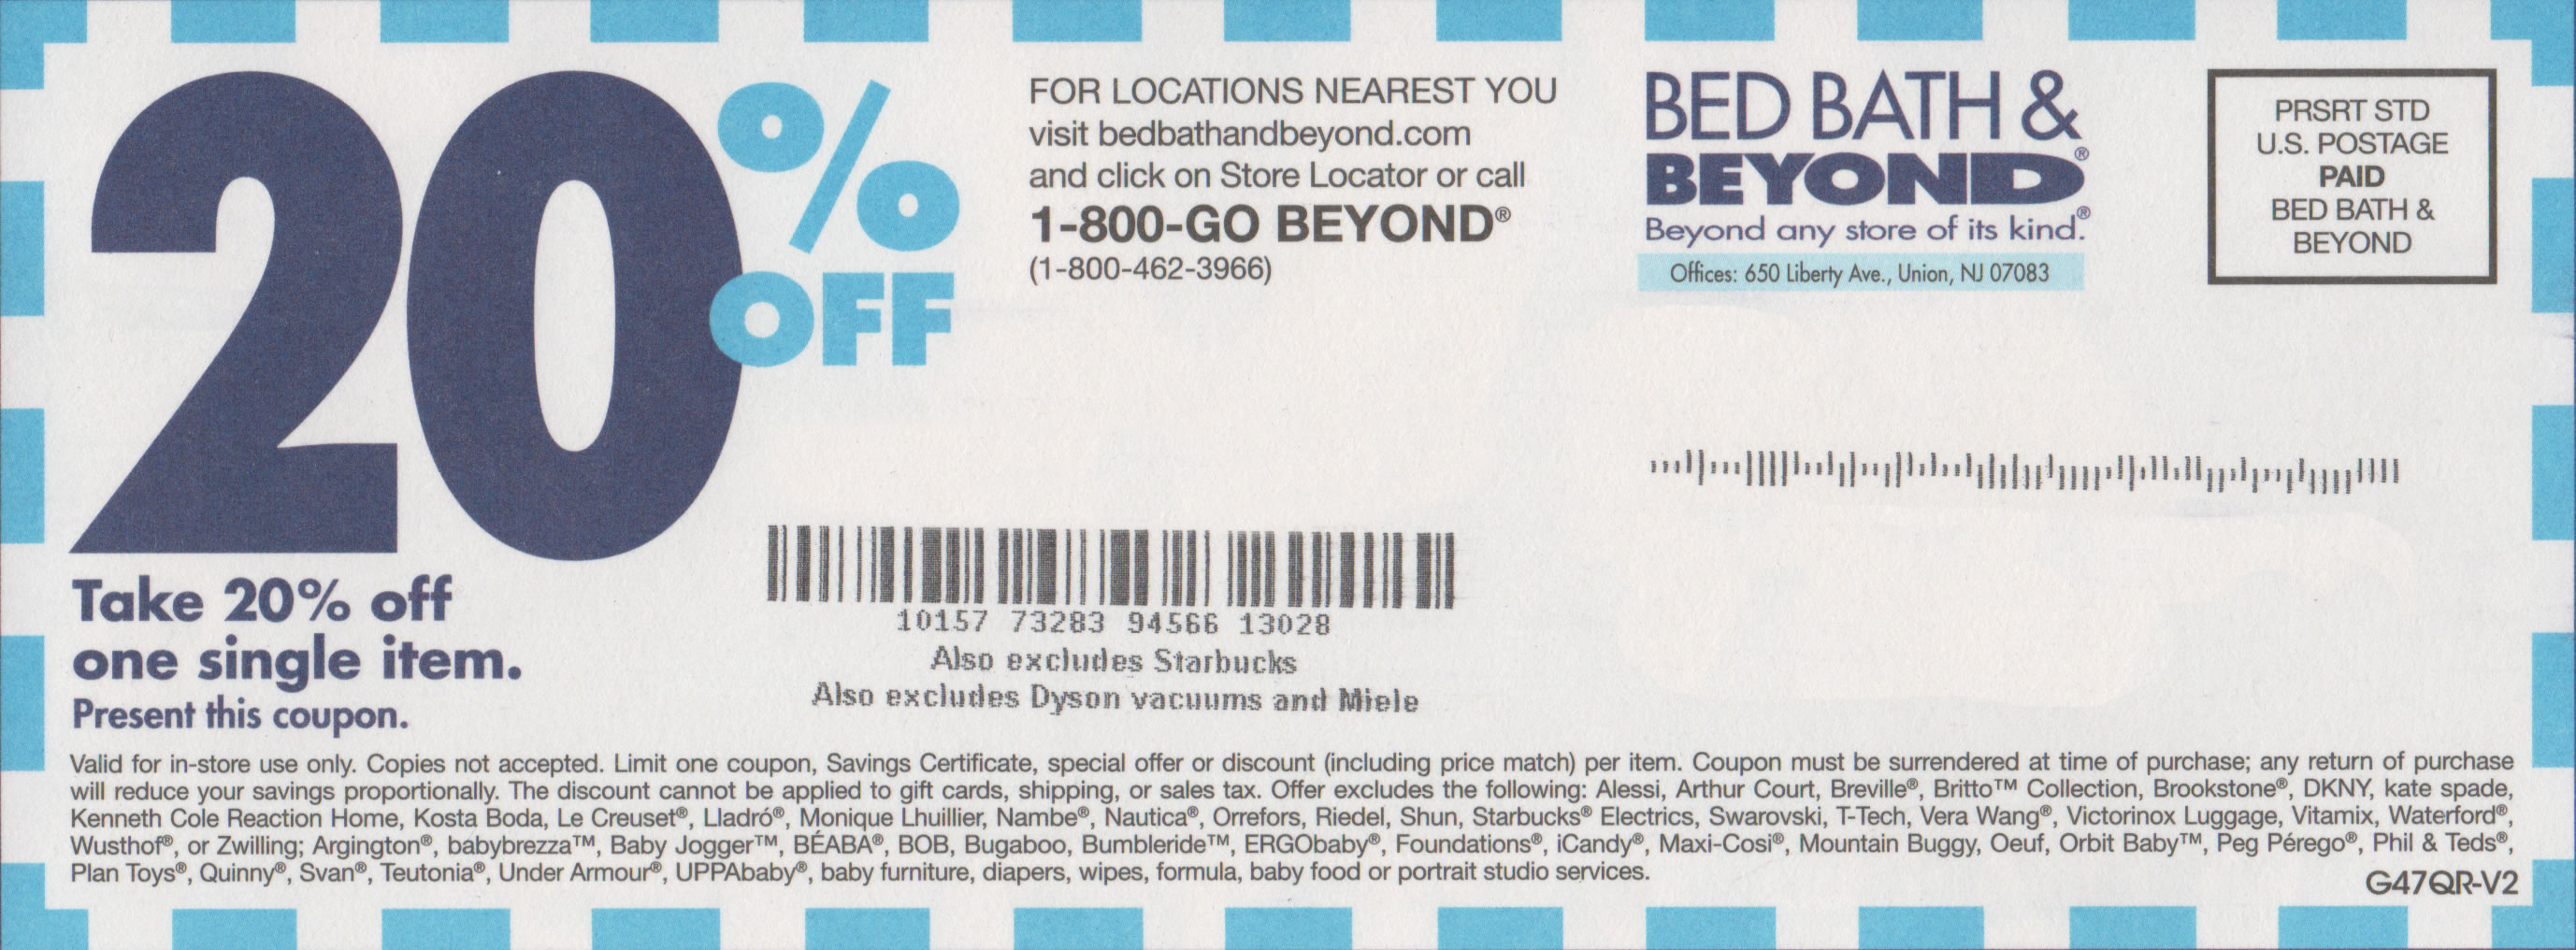 Bed bath and beyond discount coupons printable